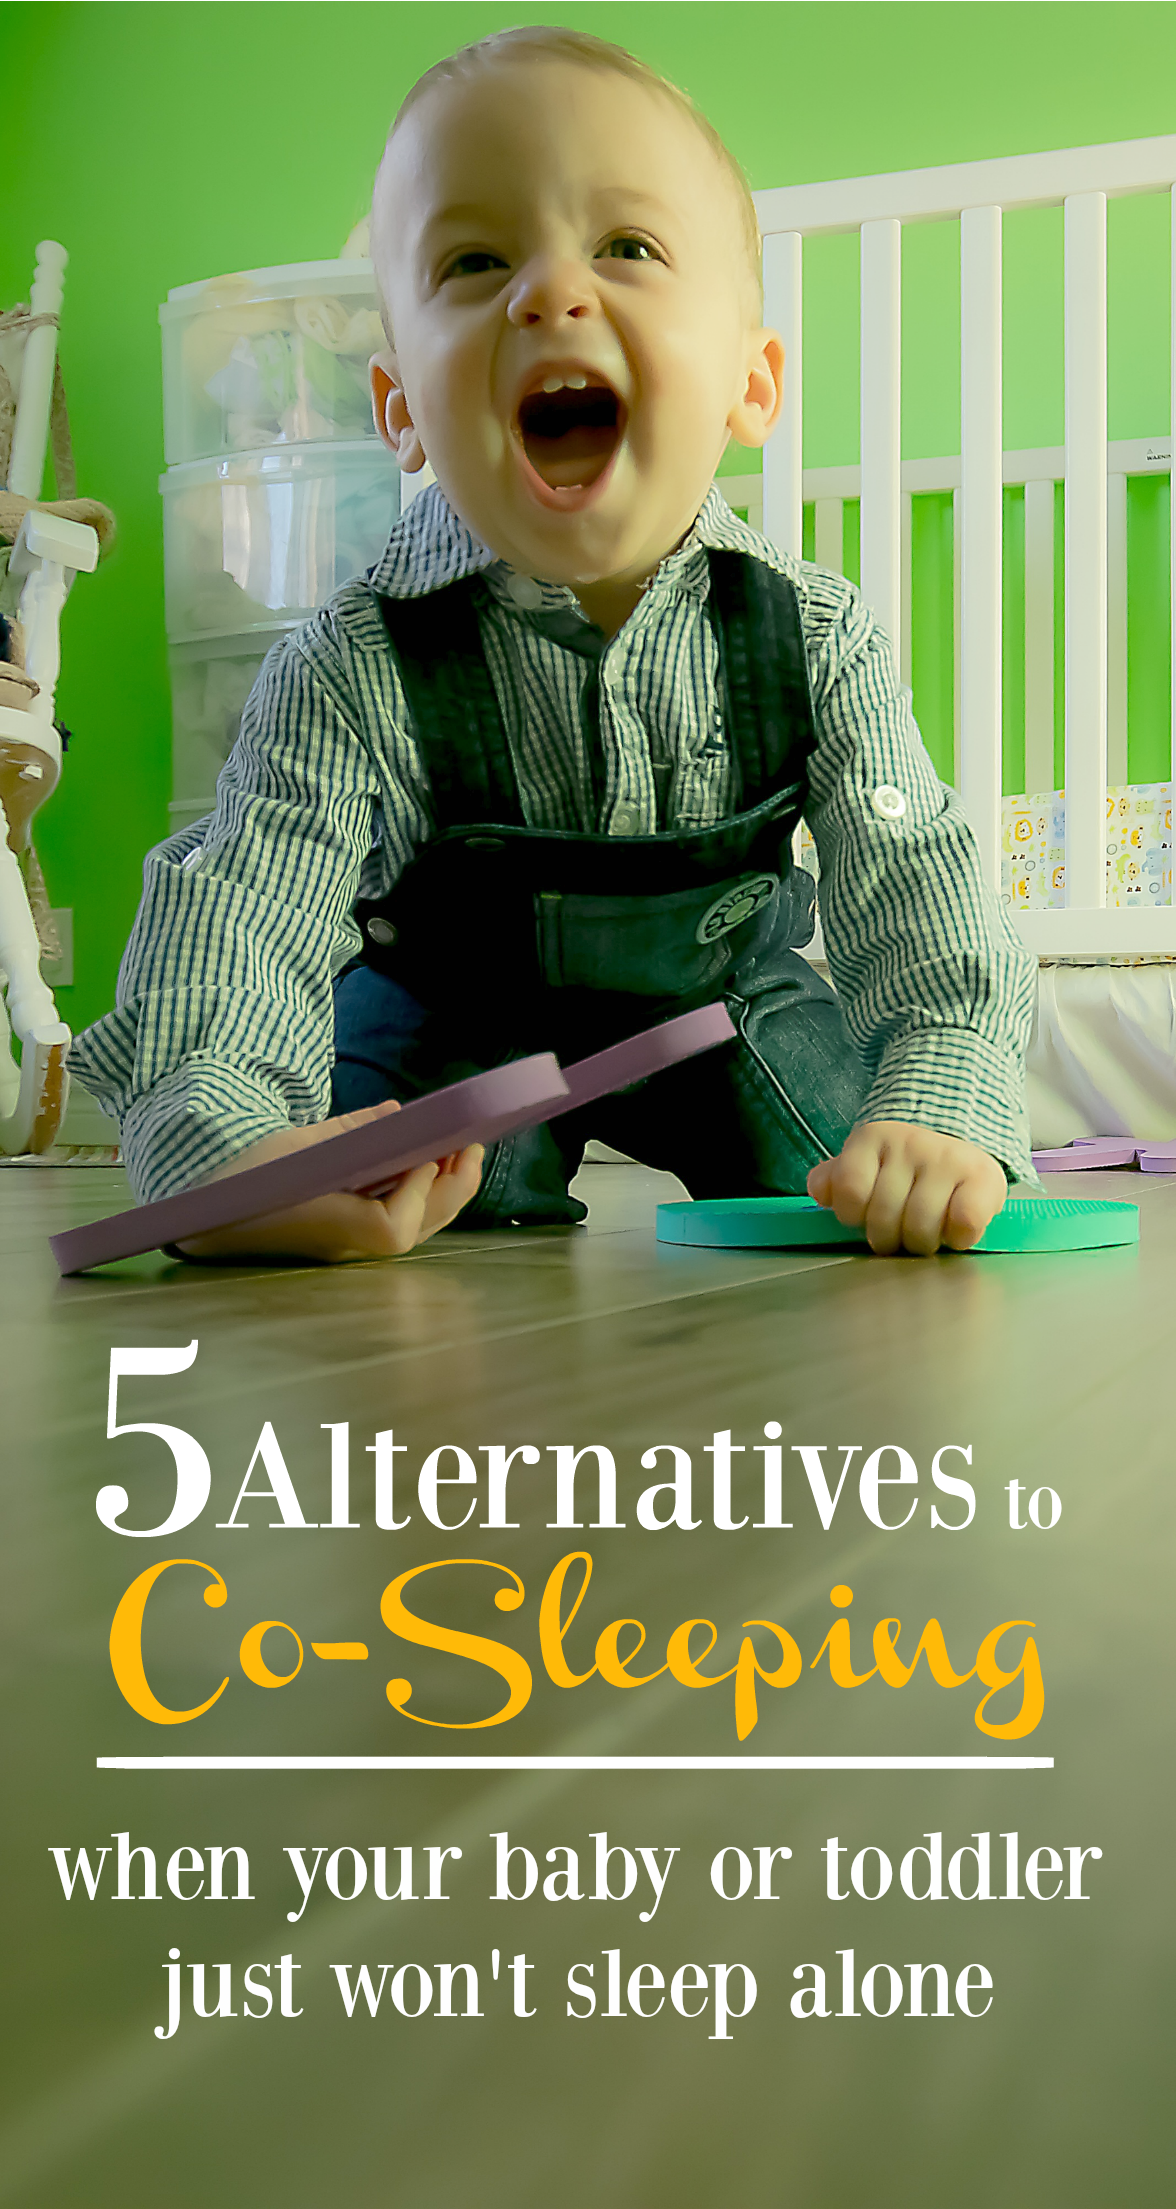 These co-sleeping alternatives provide the best of both worlds - the bonding and comfort of co-sleeping, but the safety that you want your baby or toddler to have while sleeping.